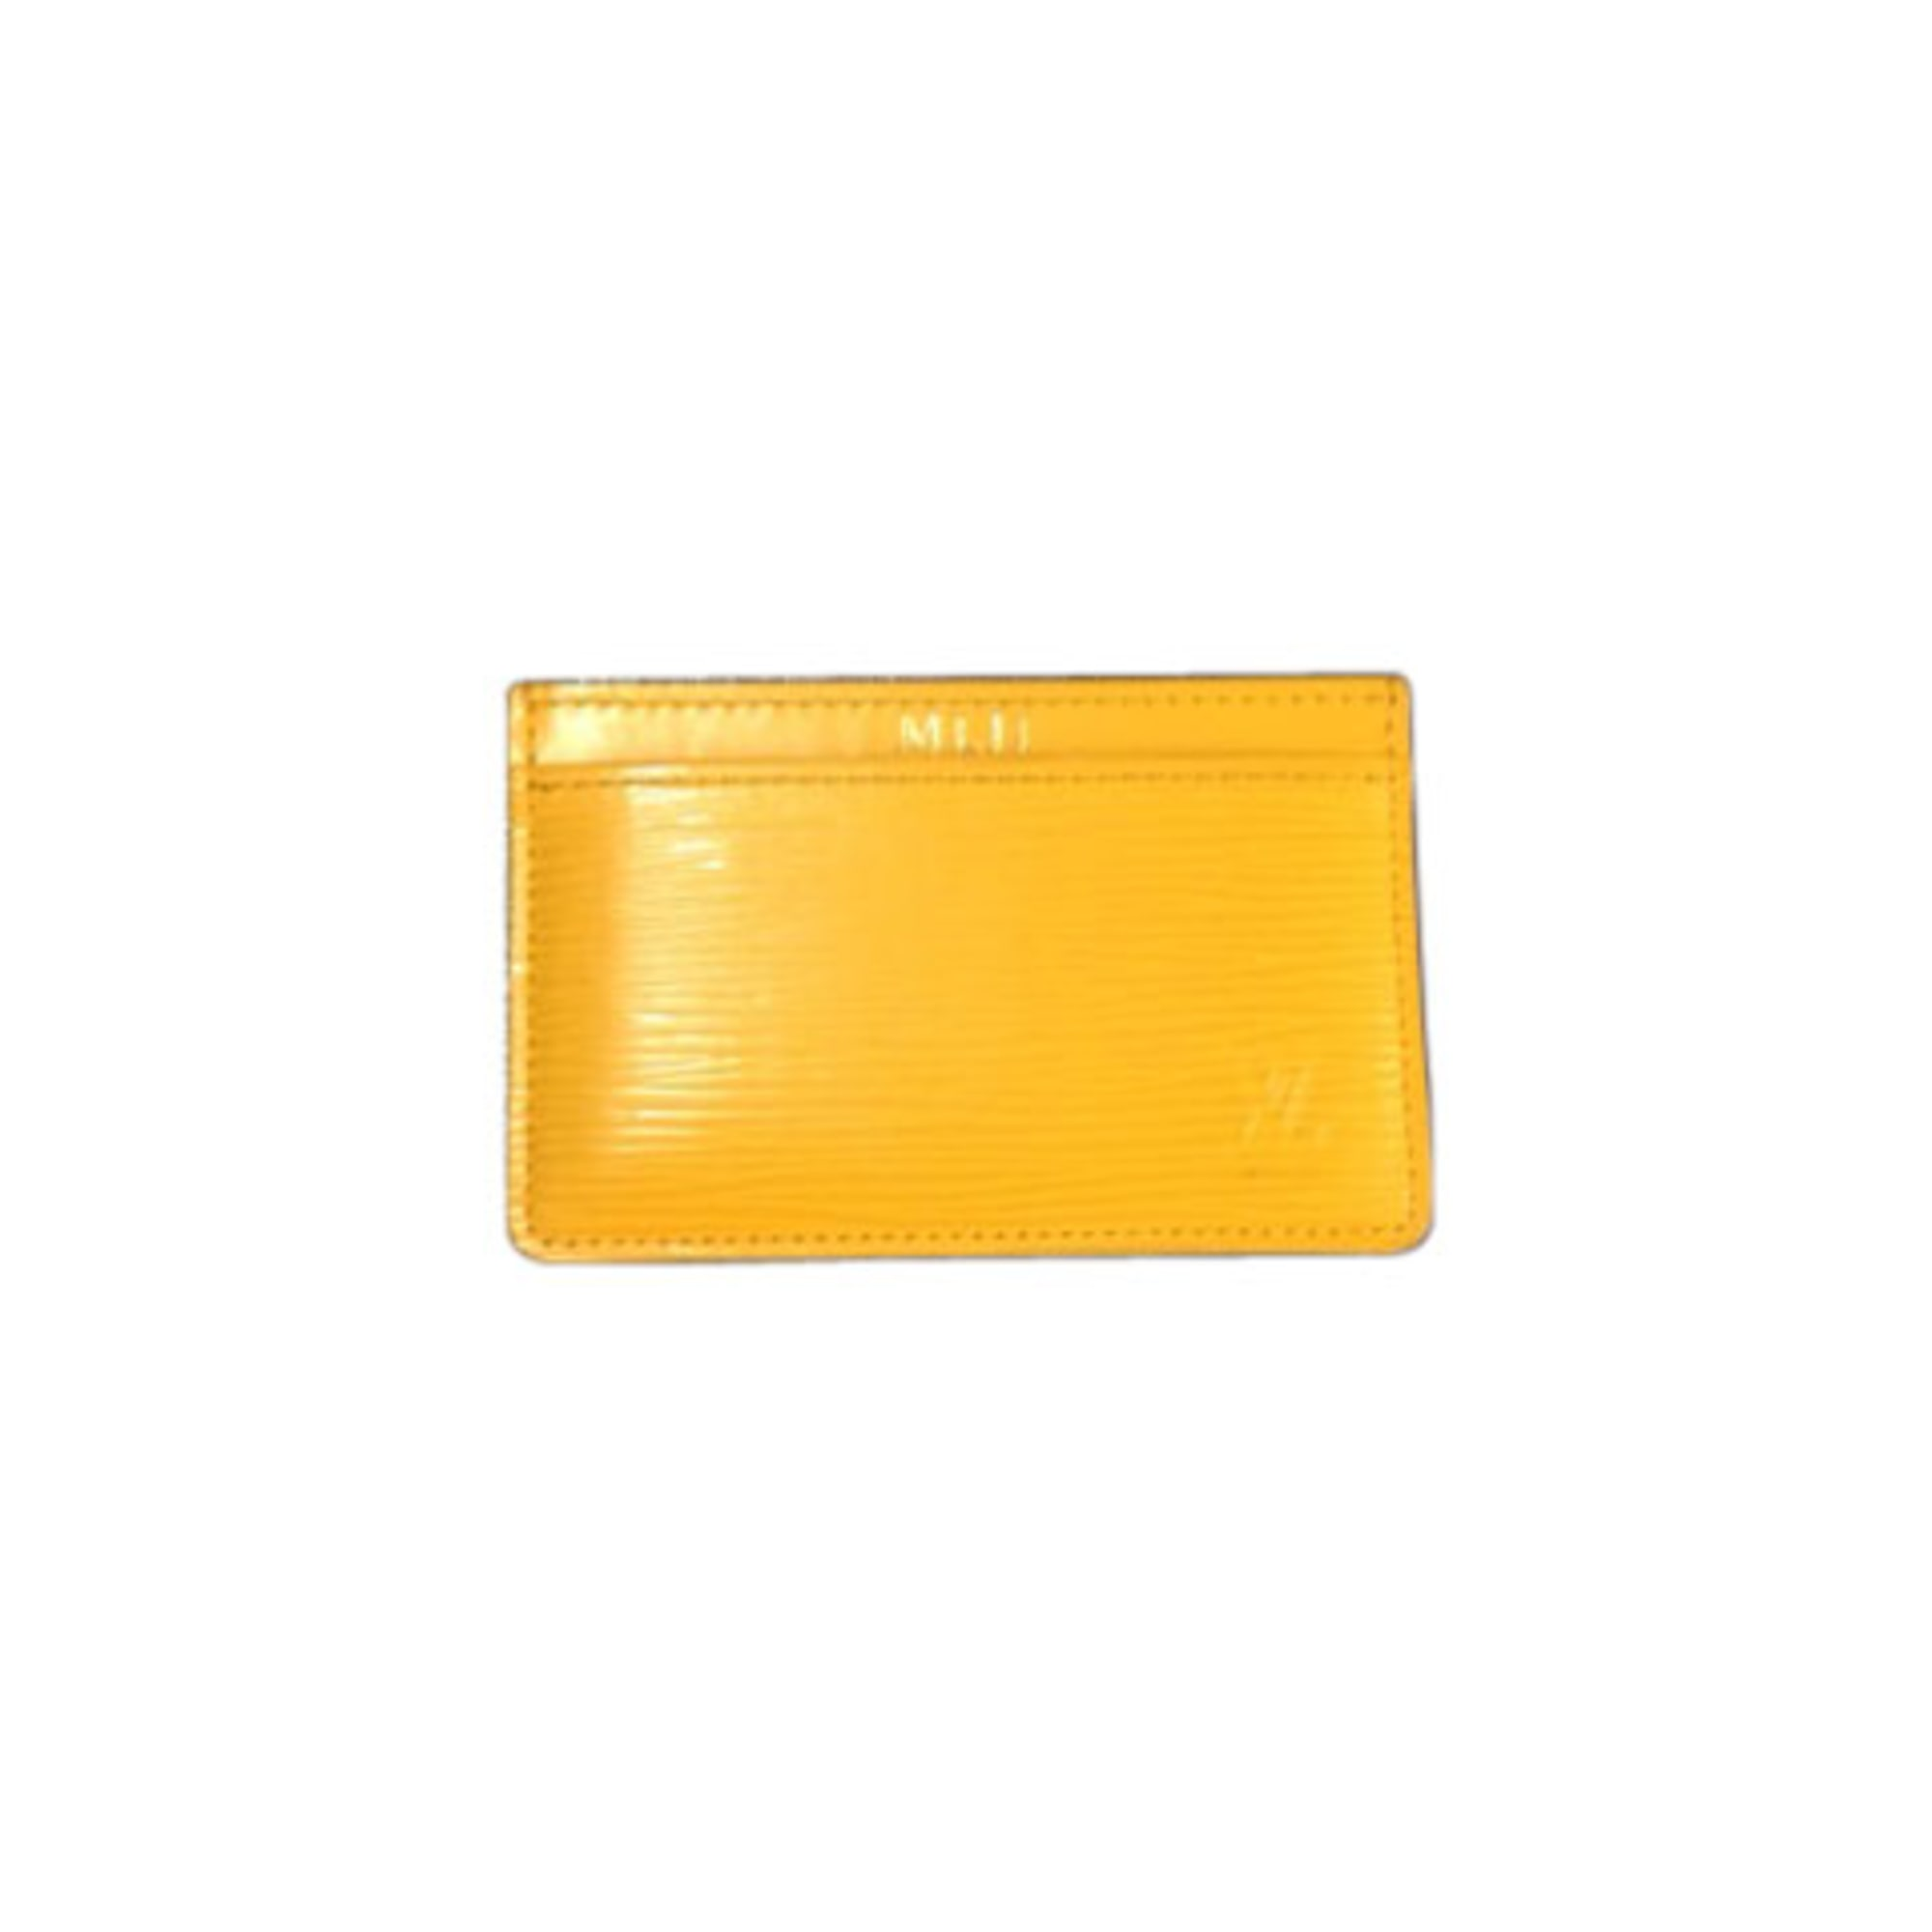 Porte-cartes LOUIS VUITTON jaune - 2381206 48cb203e5c5